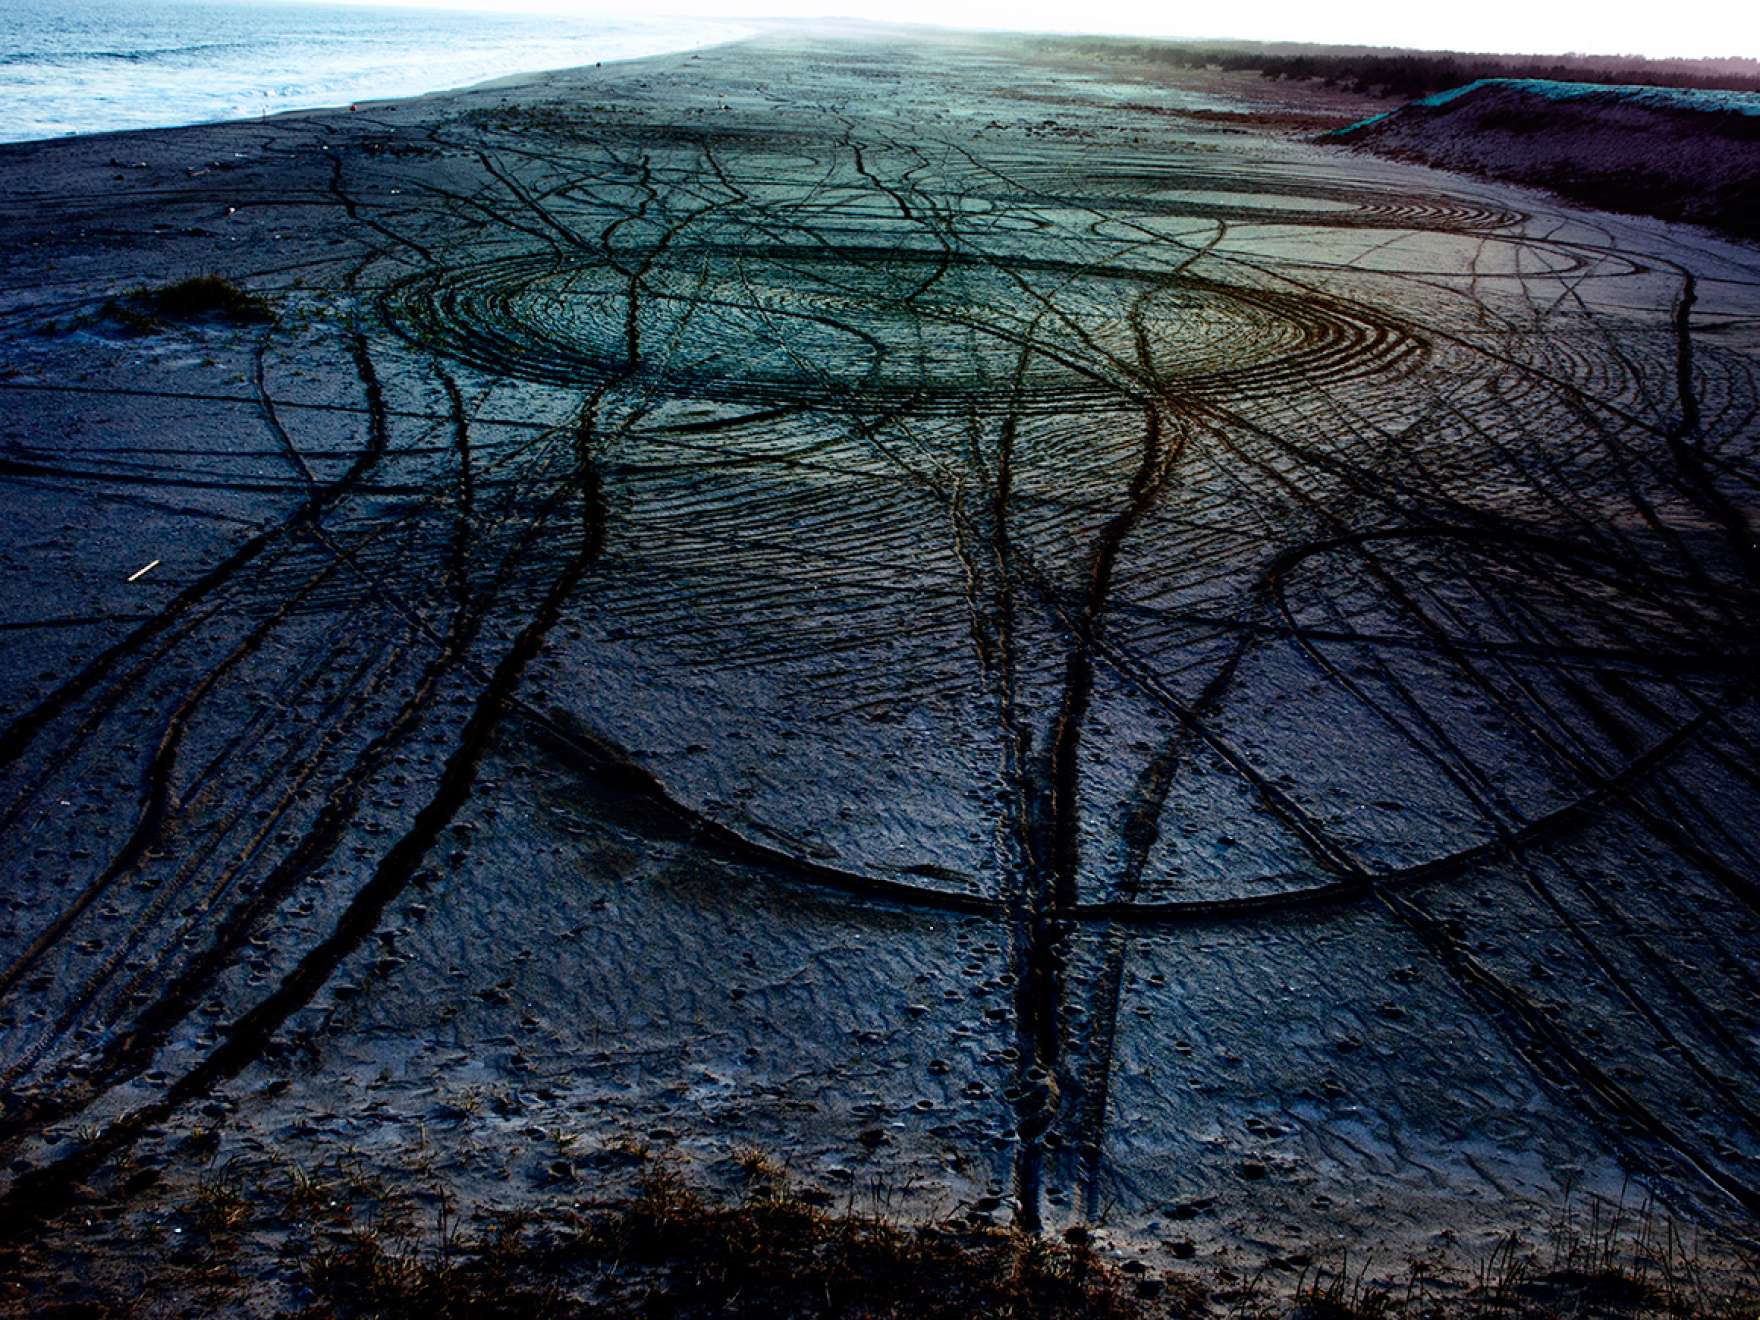 Lieko Shiga, ​Rasen kaigan (Spiral Shore), 46, 2011, ​from the series ​Rasen kaigan (Spiral Shore)​​, 2011